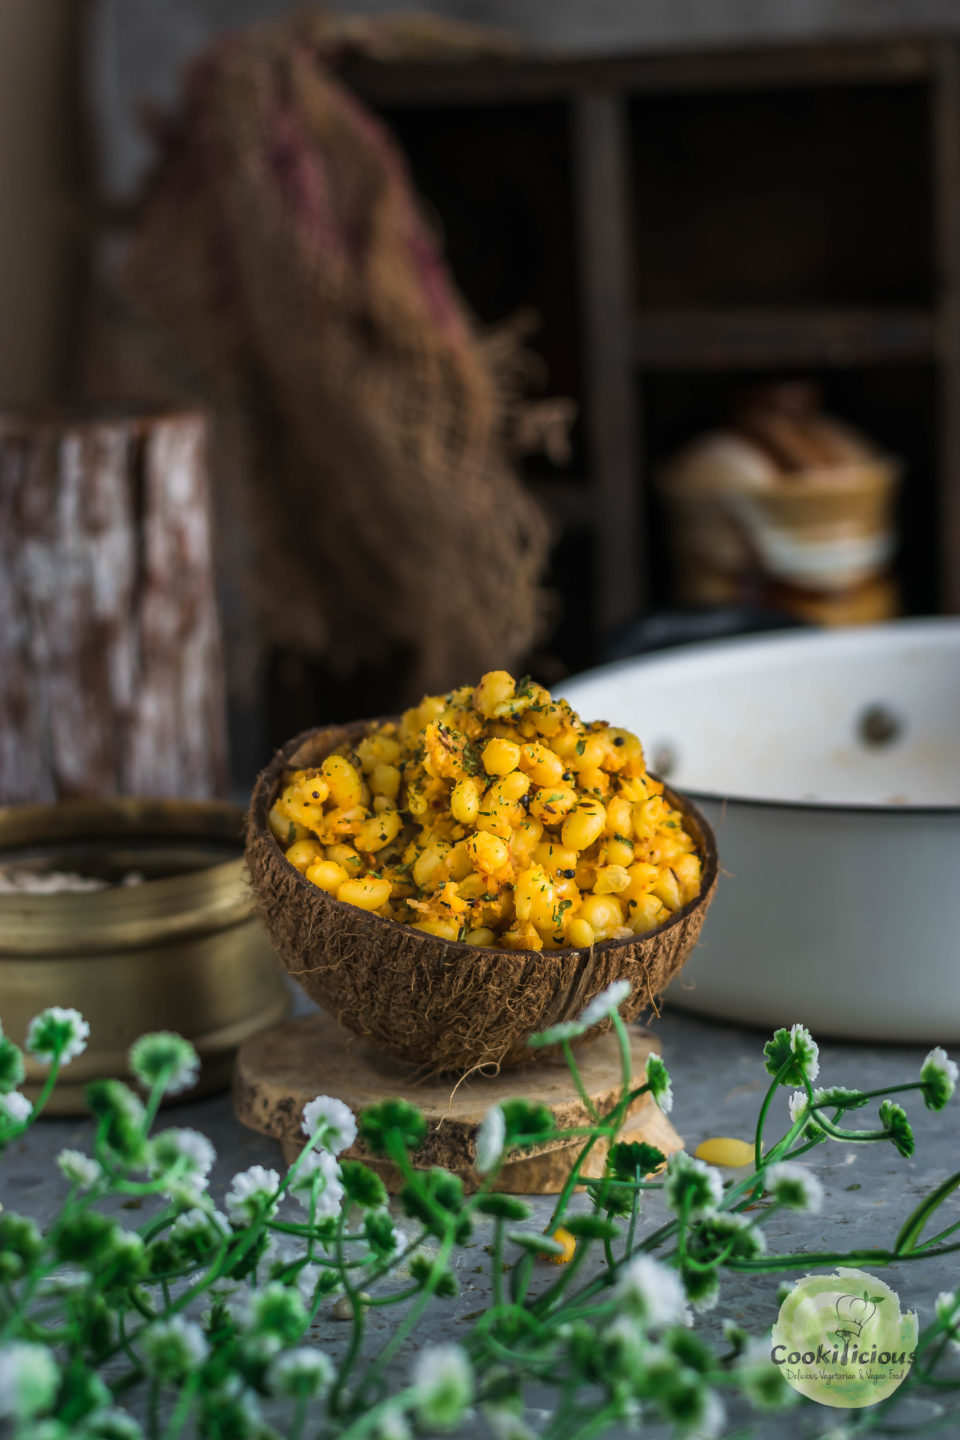 an empty coconut shell filled with this Asian snack called navy beans sundal - a vegan salad